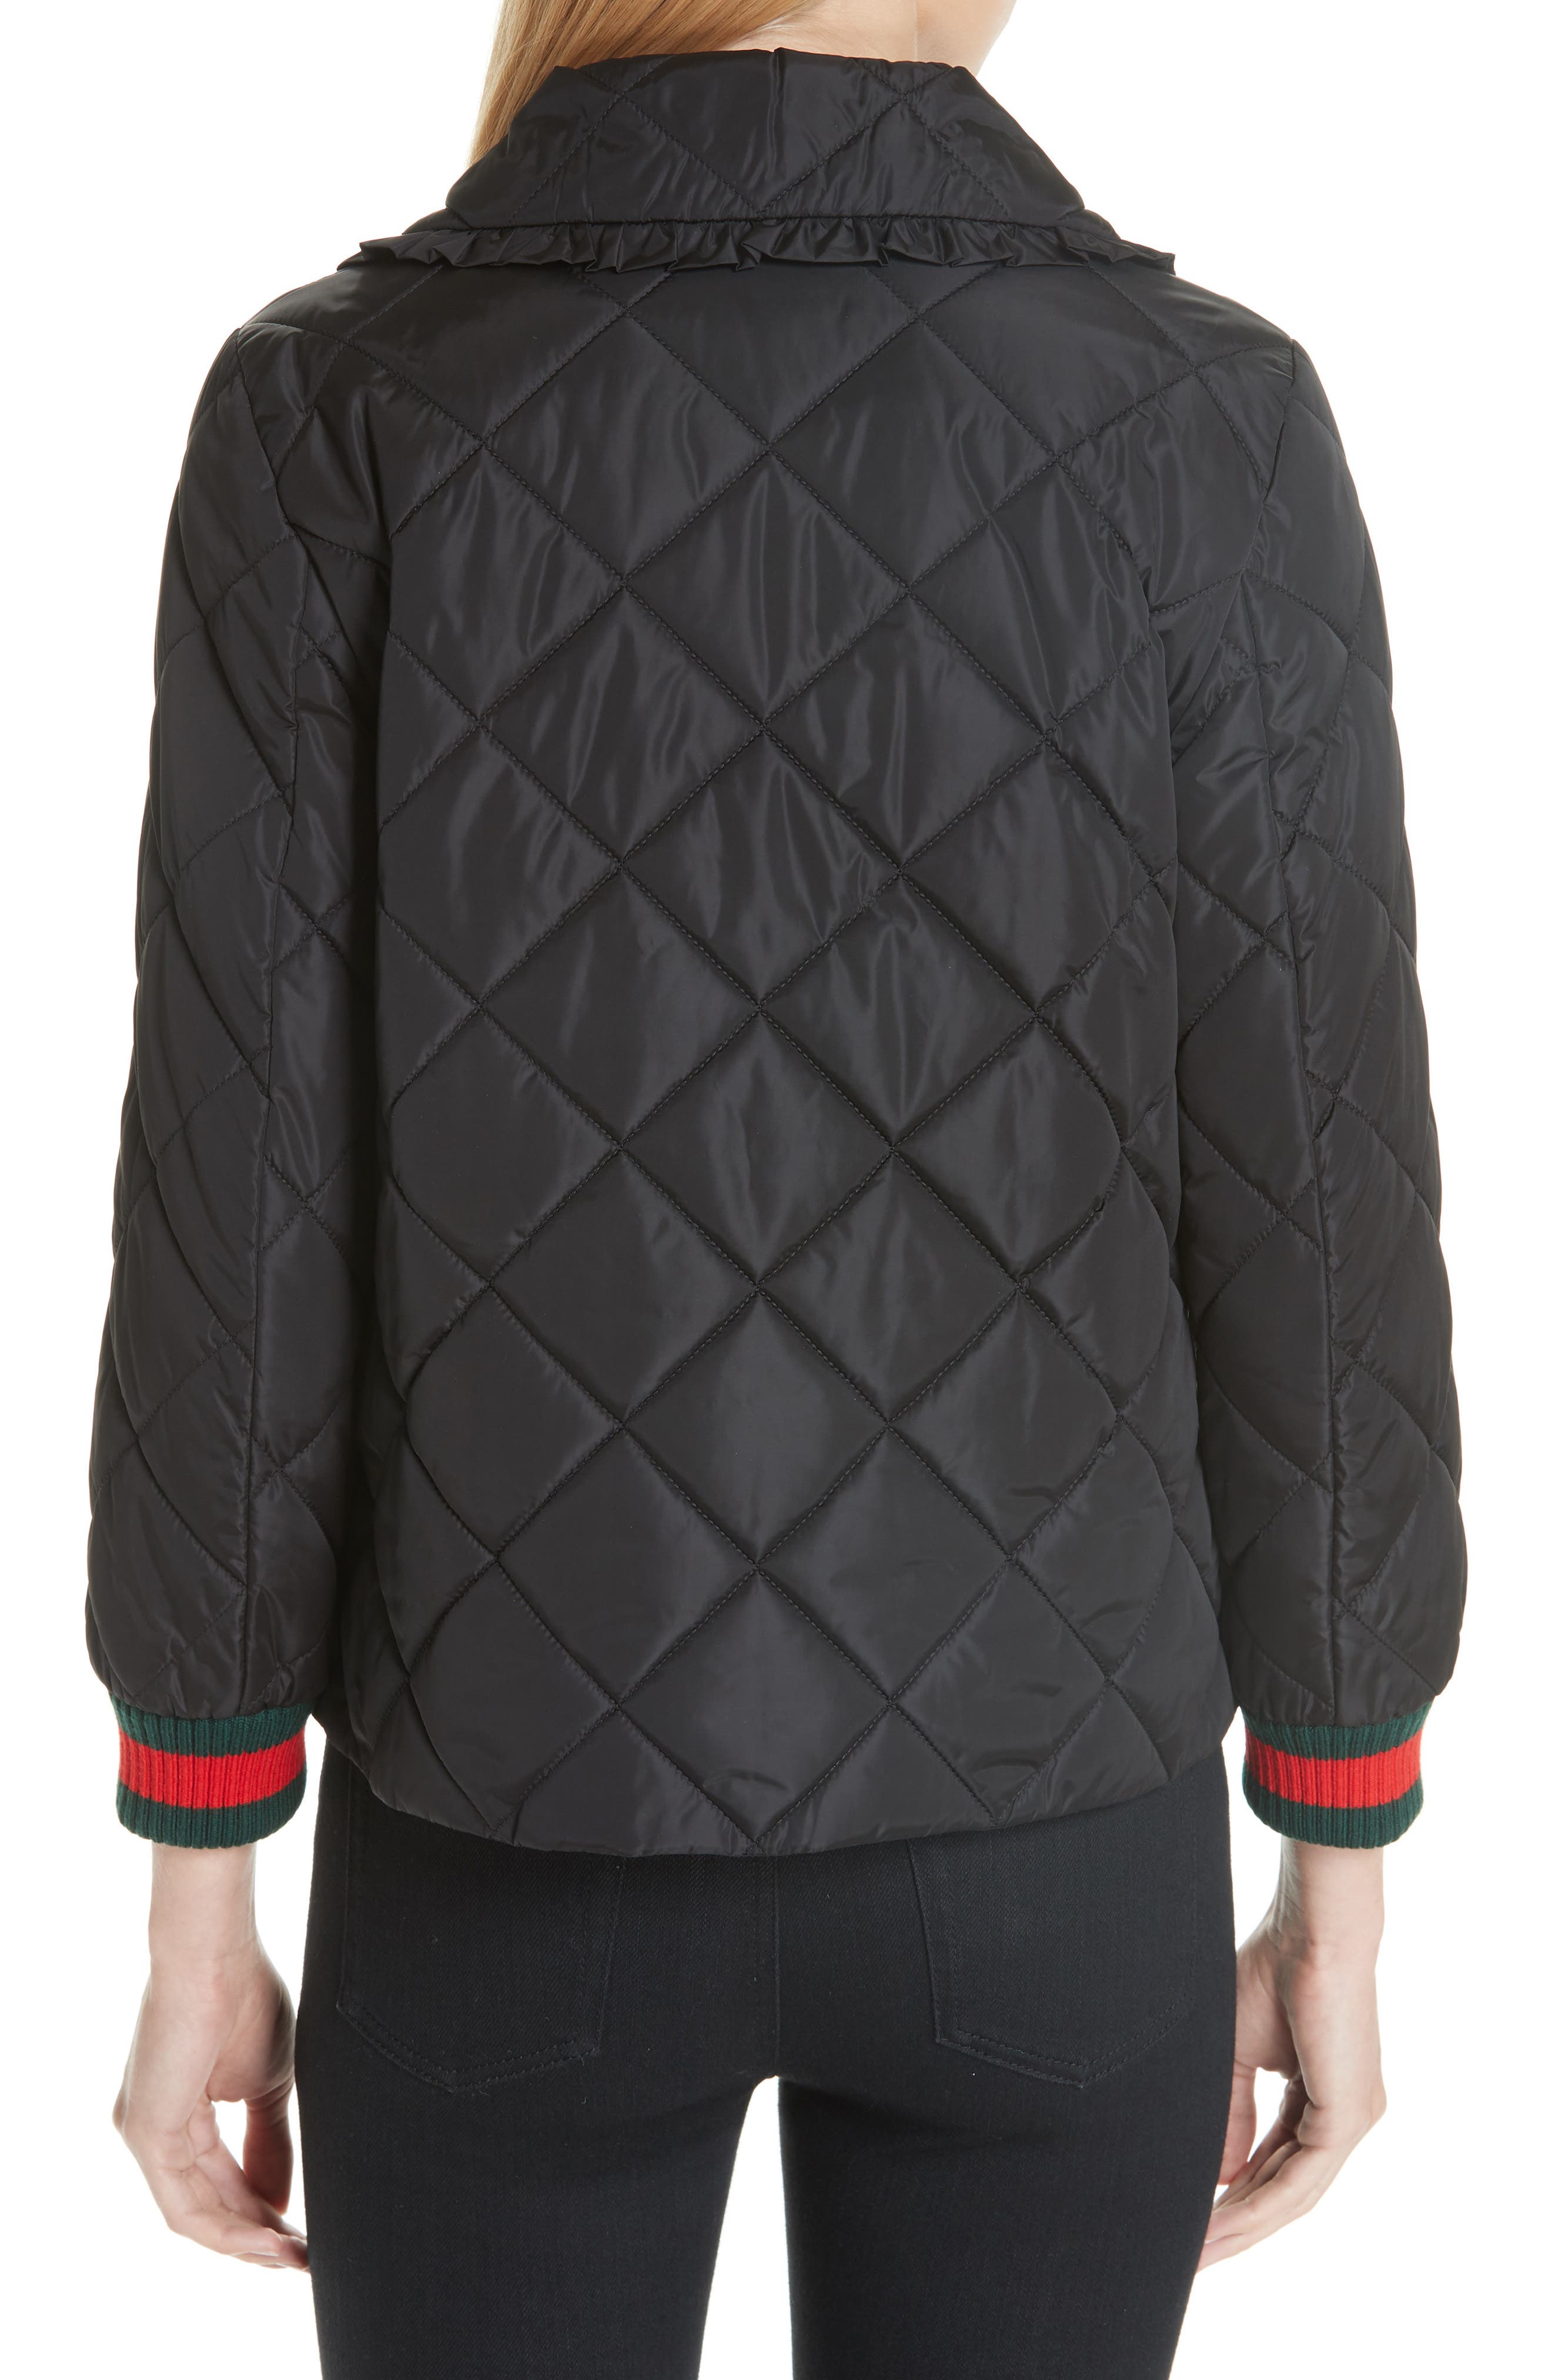 GUCCI, Ruffle Trim Quilted Caban, Alternate thumbnail 2, color, NERO